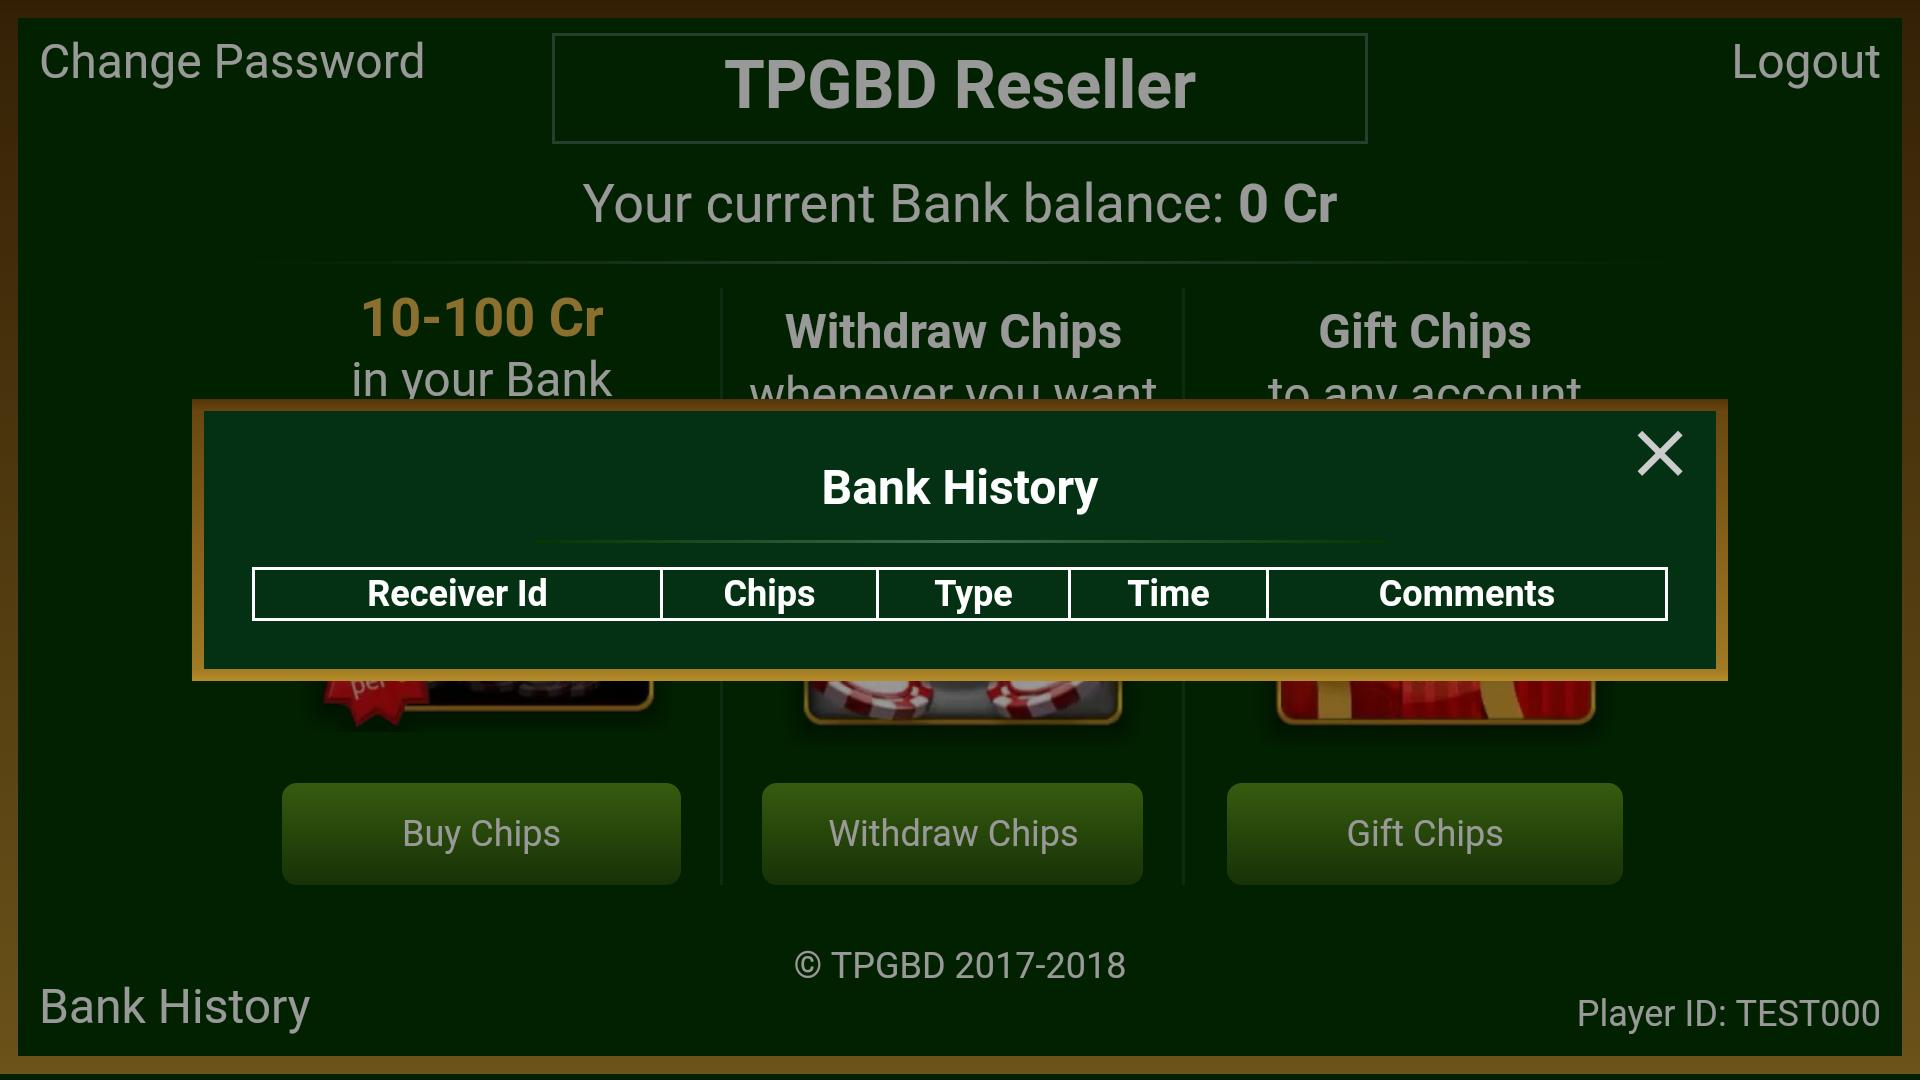 TPGBD Reseller for Android - APK Download